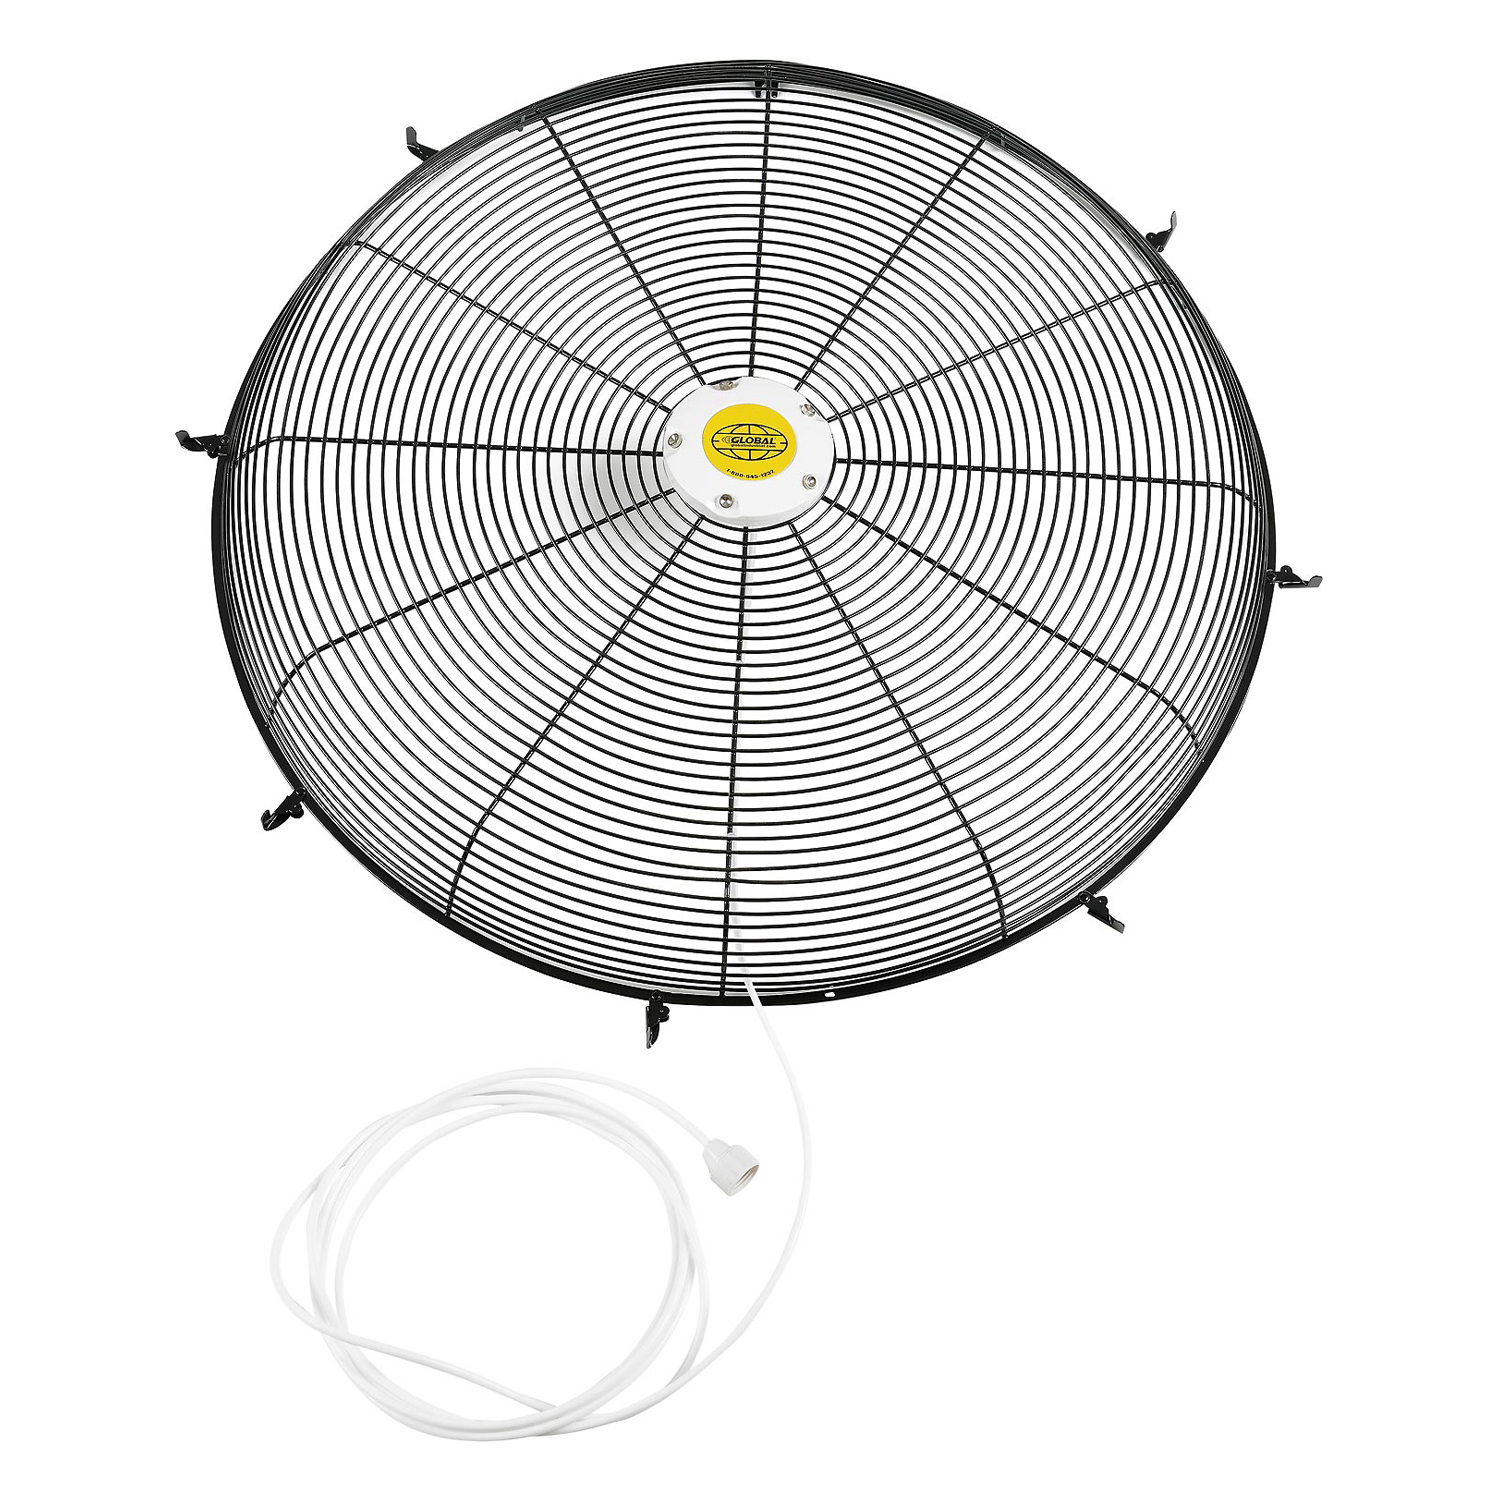 """Misting Front Fan Grille For 24"""" Pedestal and Wall Mounted Fan, Lot of 1"""